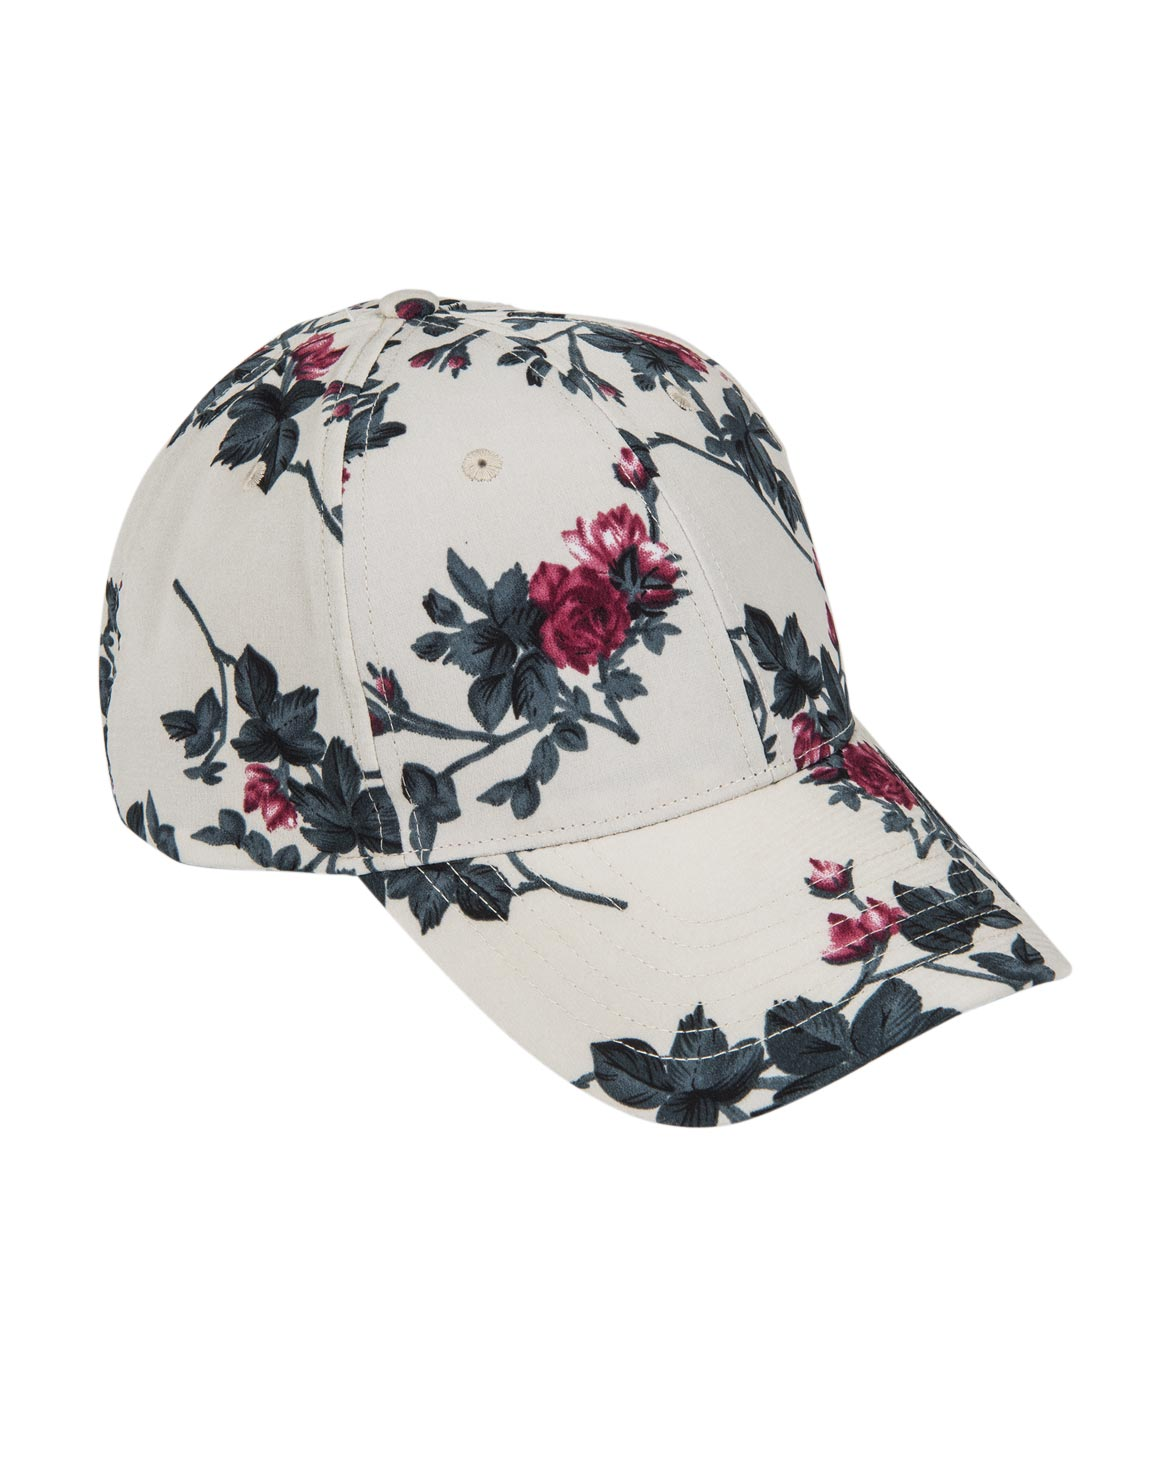 Straw Hats Online South Africa 0007b9a79db